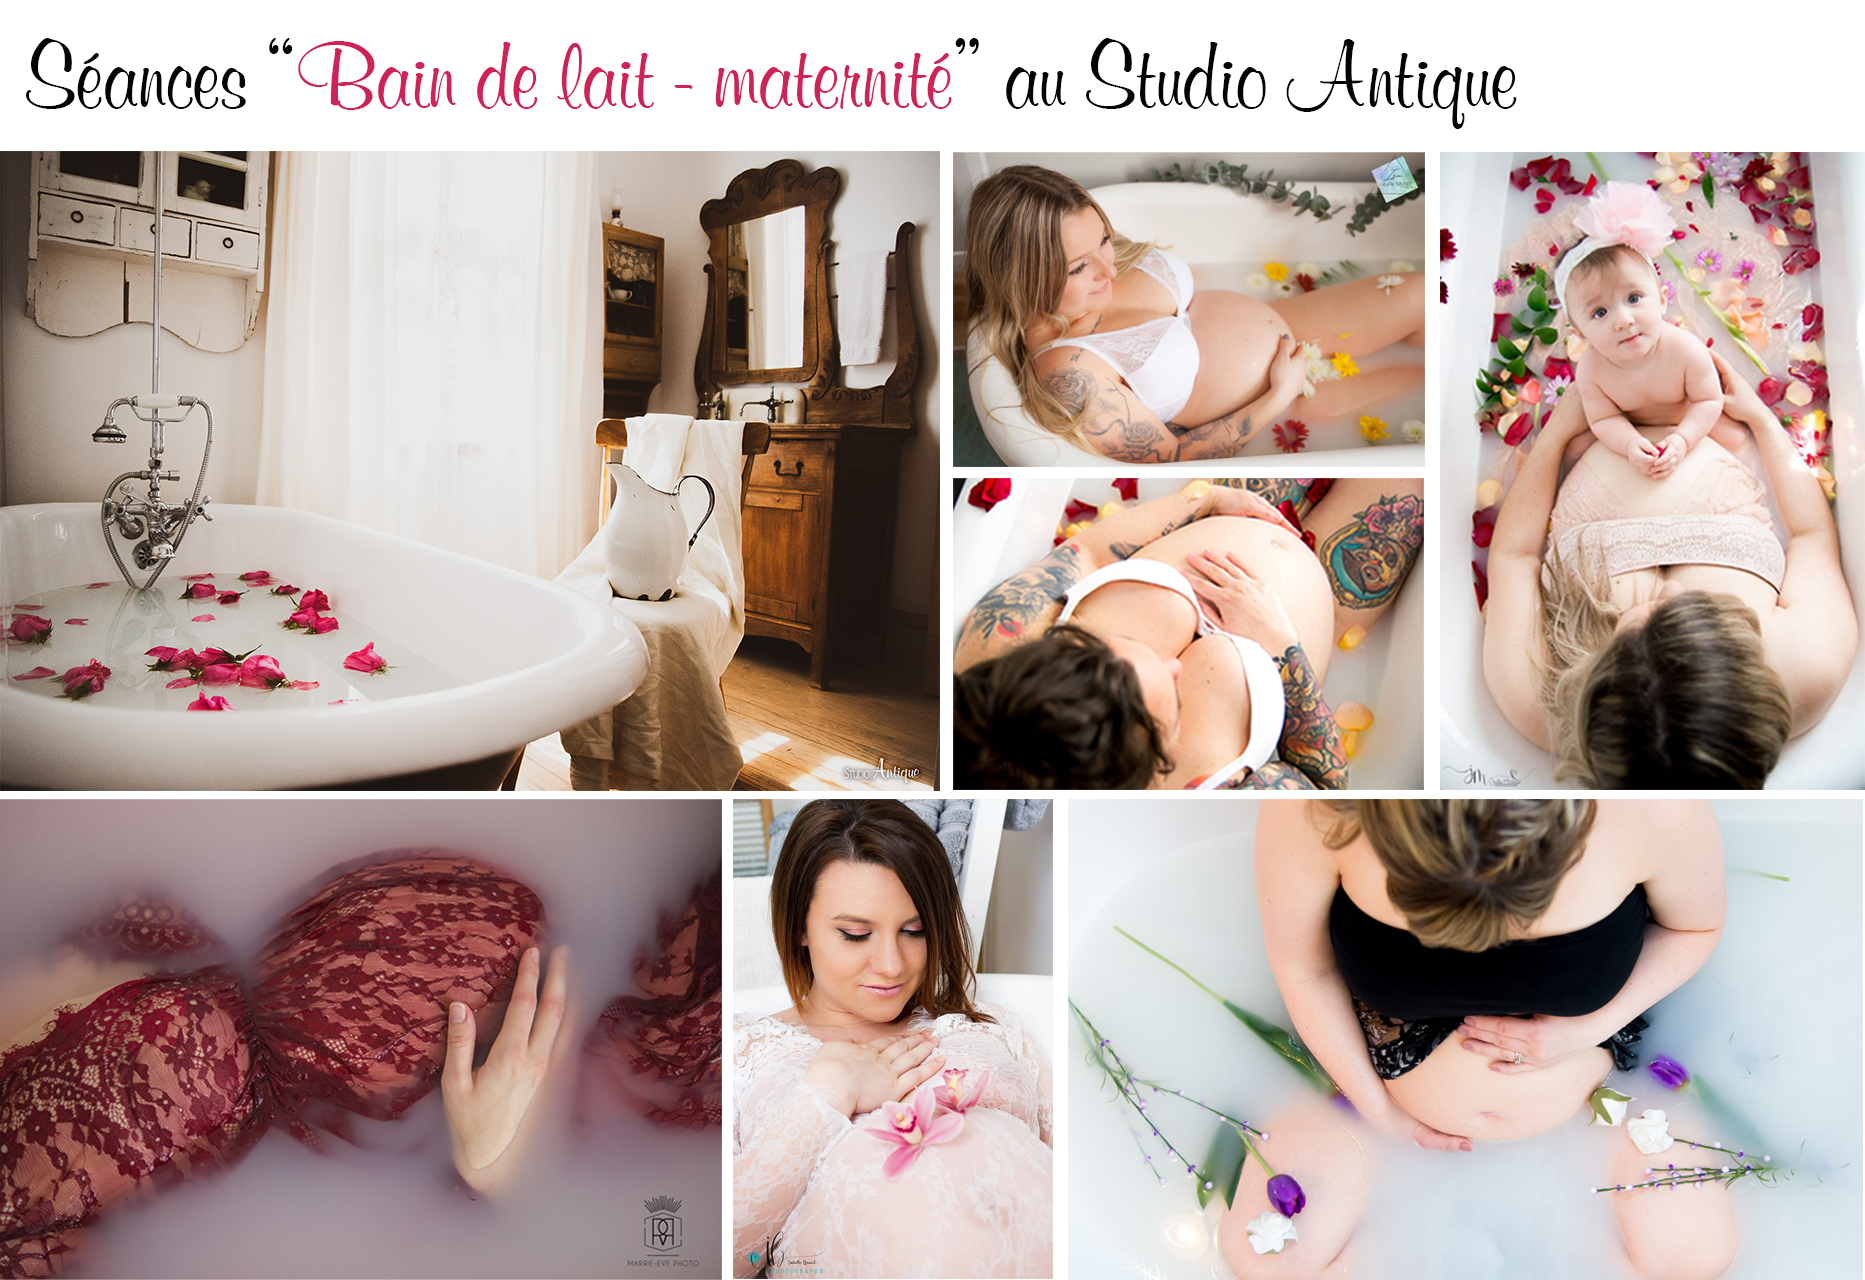 Moodboard Bain de lait maternité - Studio Antique